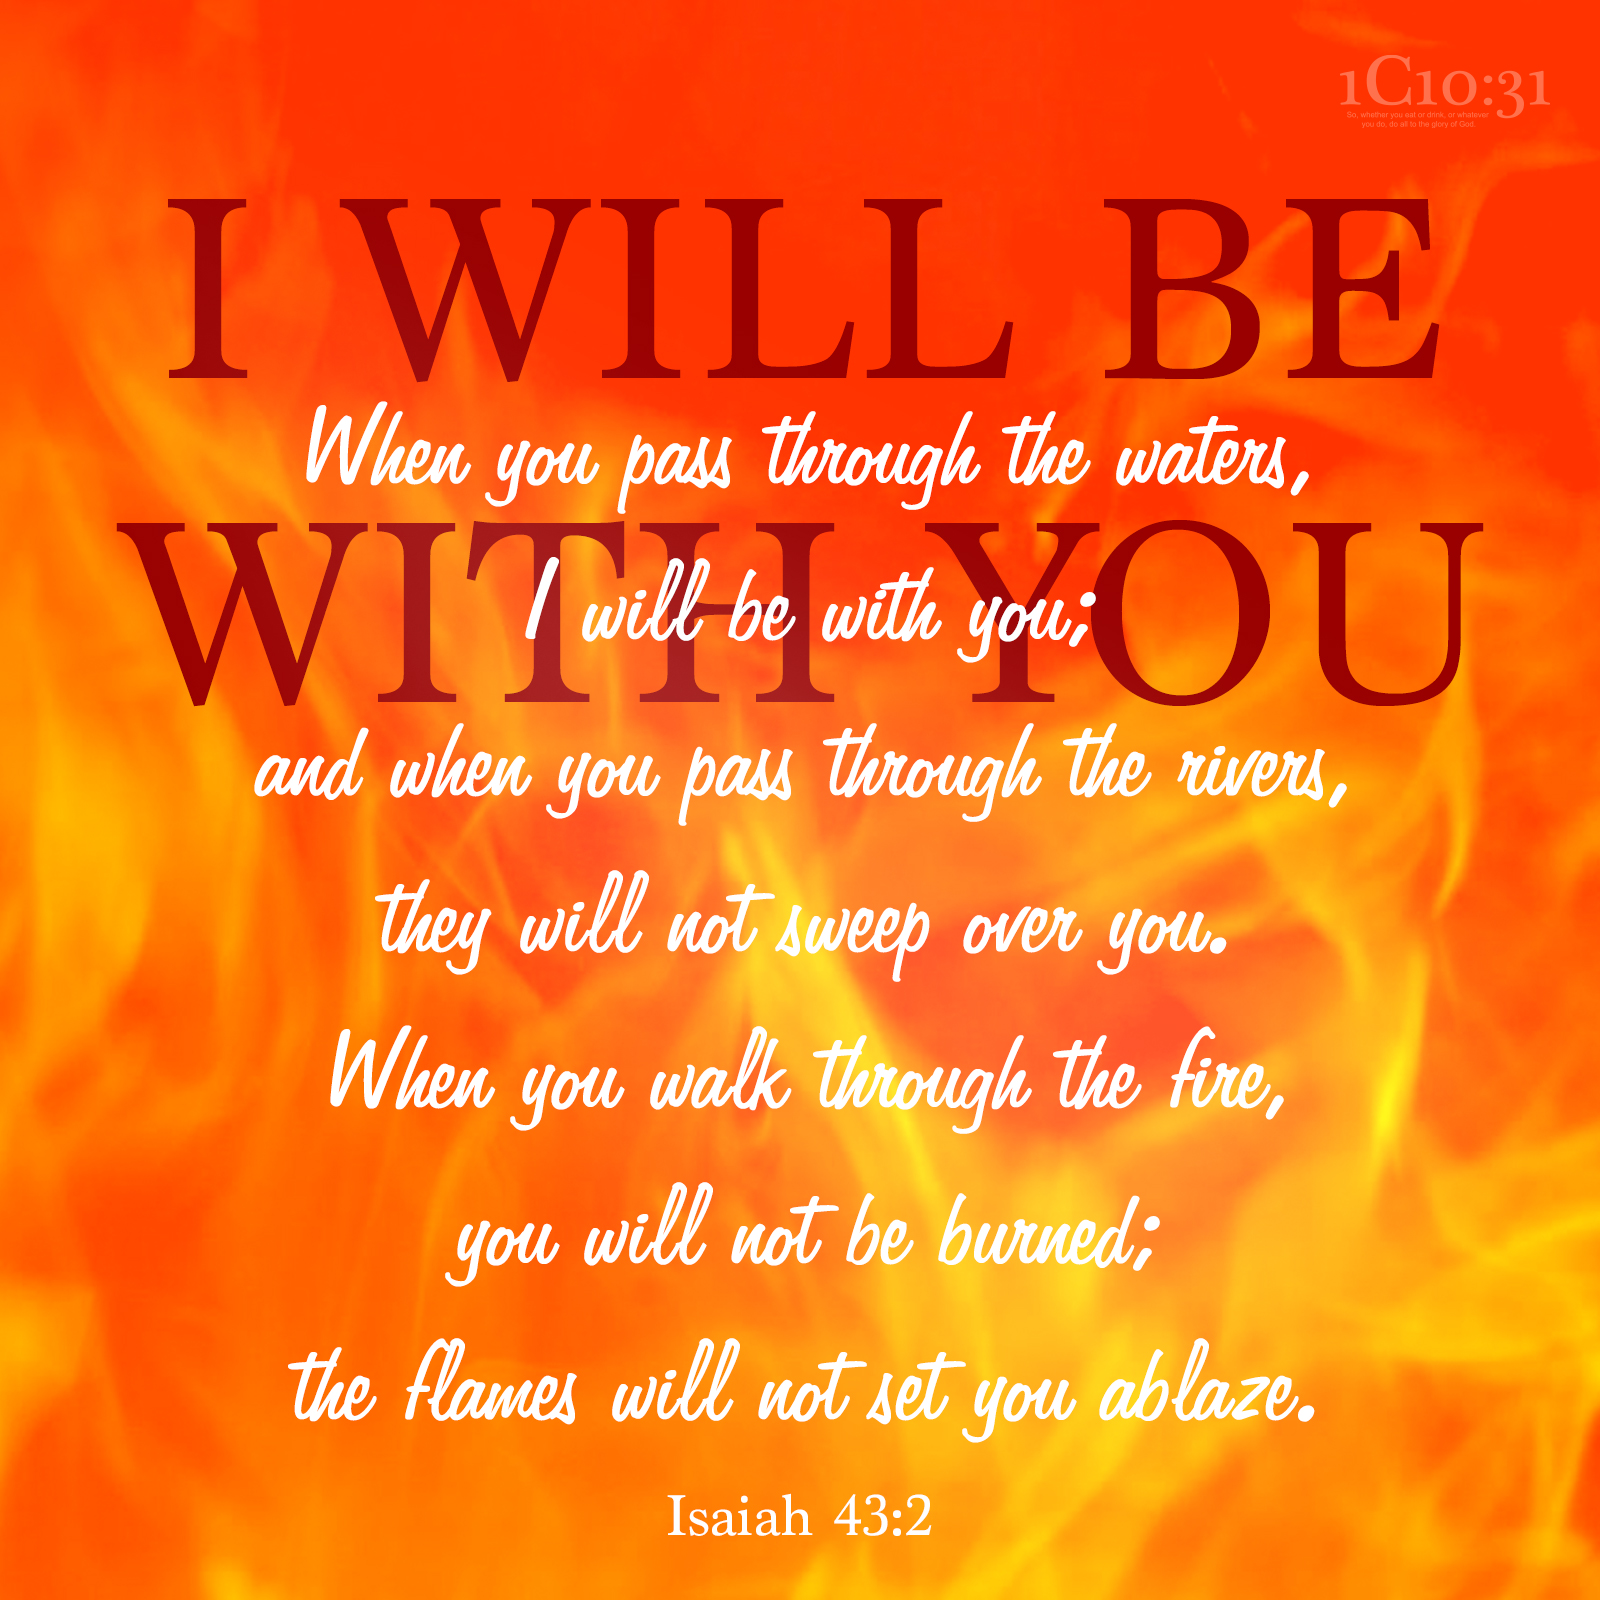 Isaiah-43-2 When you pass through the waters,     I will be with you; and when you pass through the rivers,     they will not sweep over you. When you walk through the fire,     you will not be burned;     the flames will not set you ablaze.